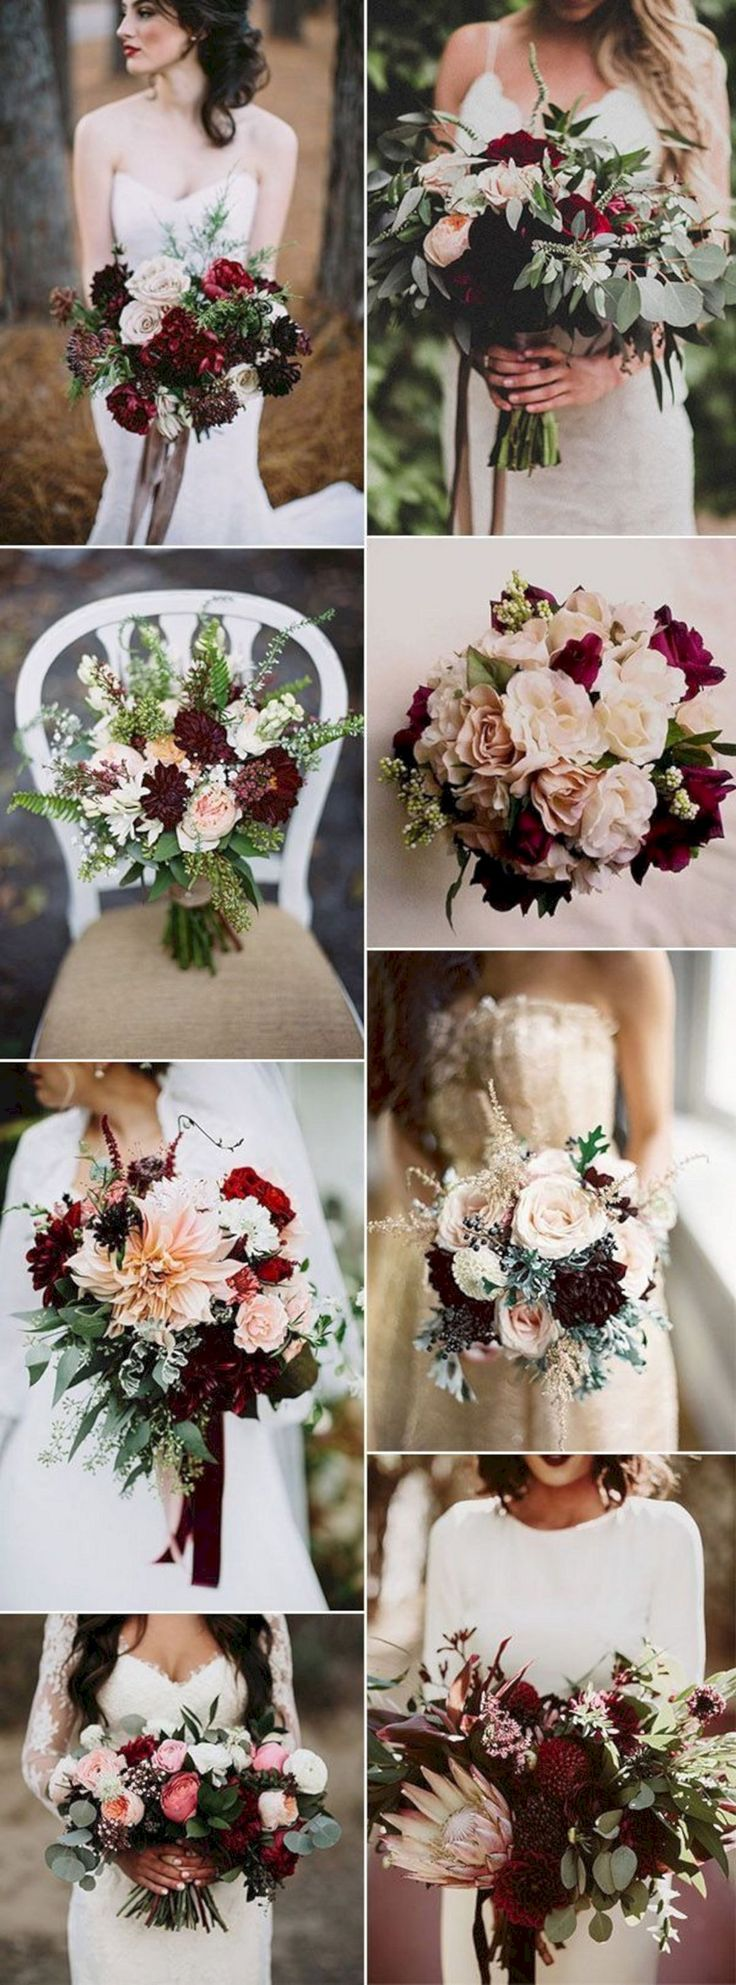 Awesome 25+ Wonderful Winter Wedding Color Scheme Ideas  https://oosile.com/25-wonderful-winter-wedding-color-scheme-ideas-16136